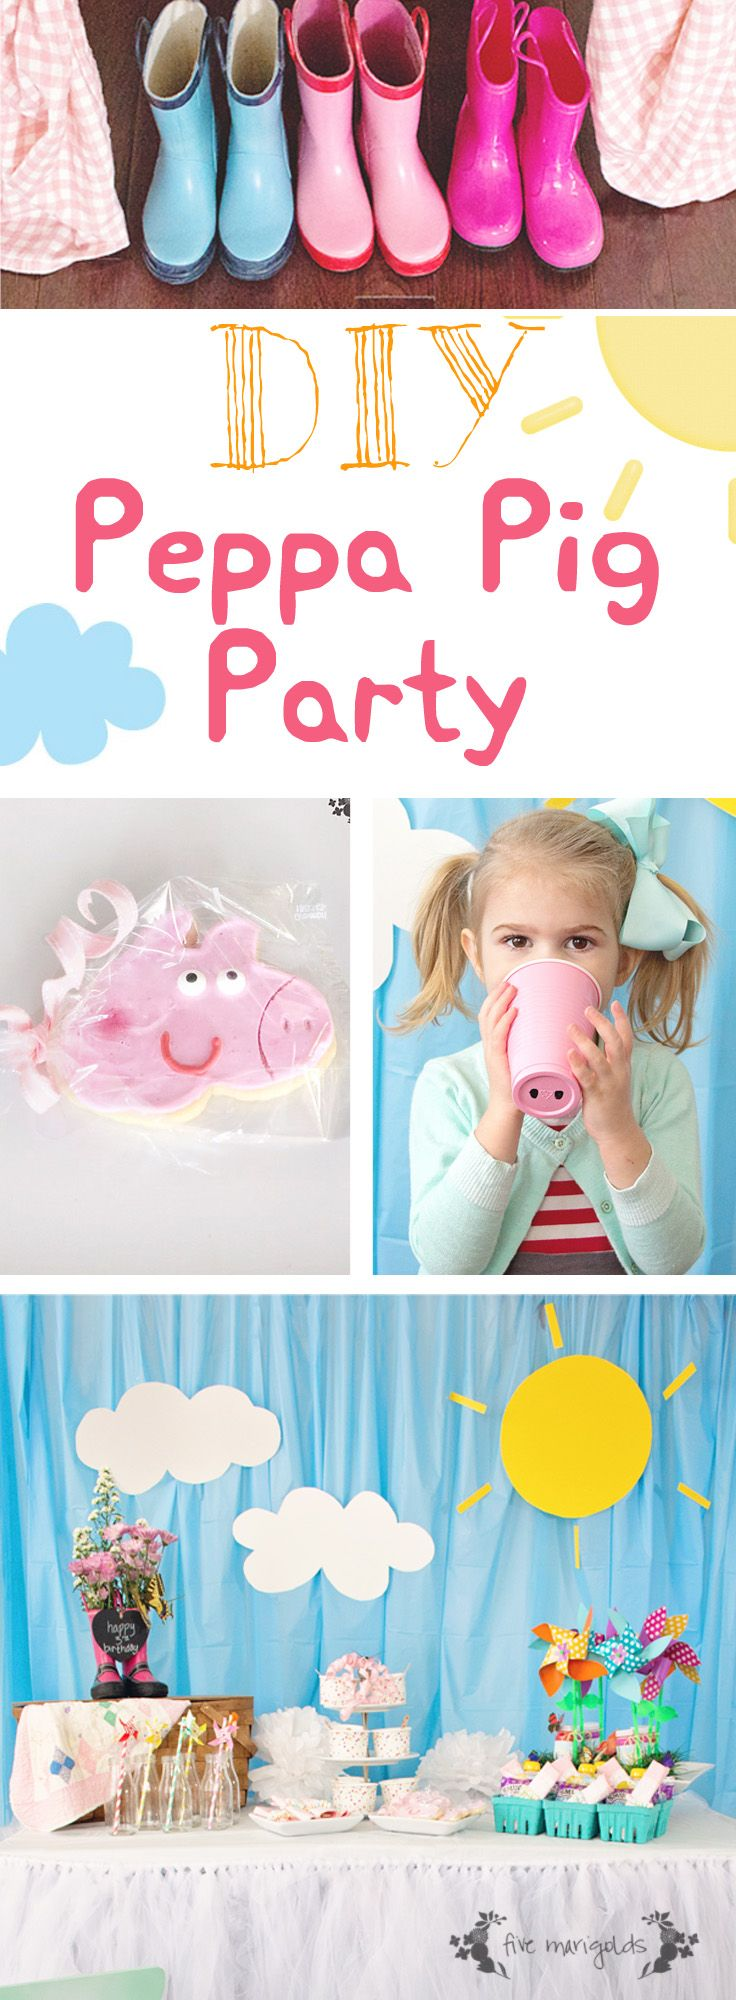 Peppa Pig Picnic Themed Birthday Party When planning my youngest's 3rd birthday, it was a no-brainer to choose a Peppa Pig theme. She loves the show and her favorite outfit has Peppa on it. When guests entered our home for the party, they were invited to try on a pair of rain boots for size … … Continue reading →